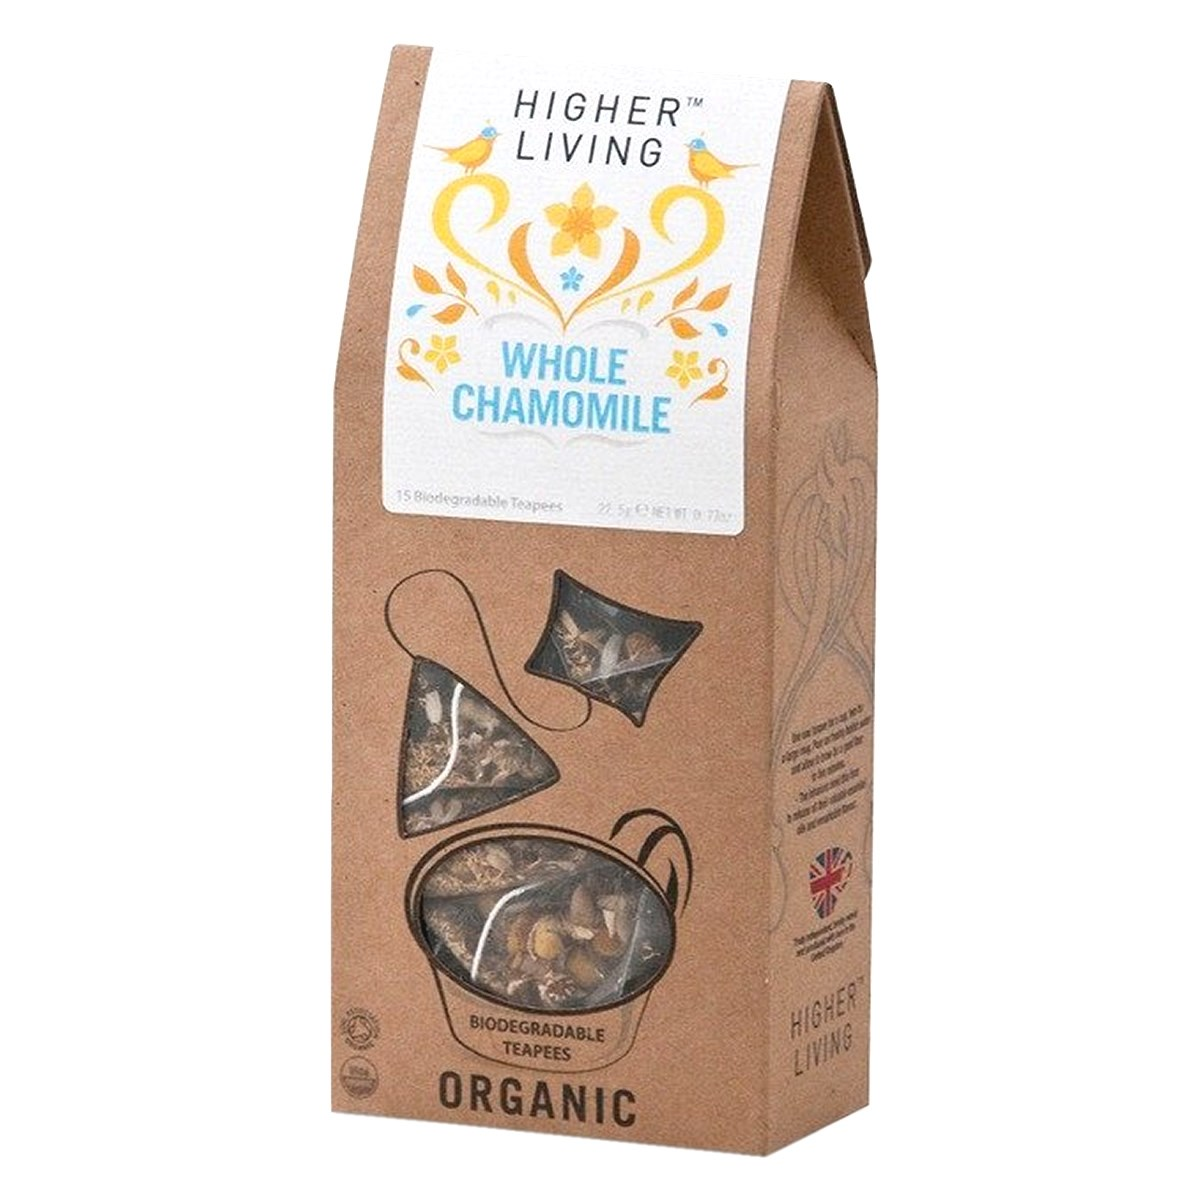 Higher Living Organic Whole Chamomile Tea